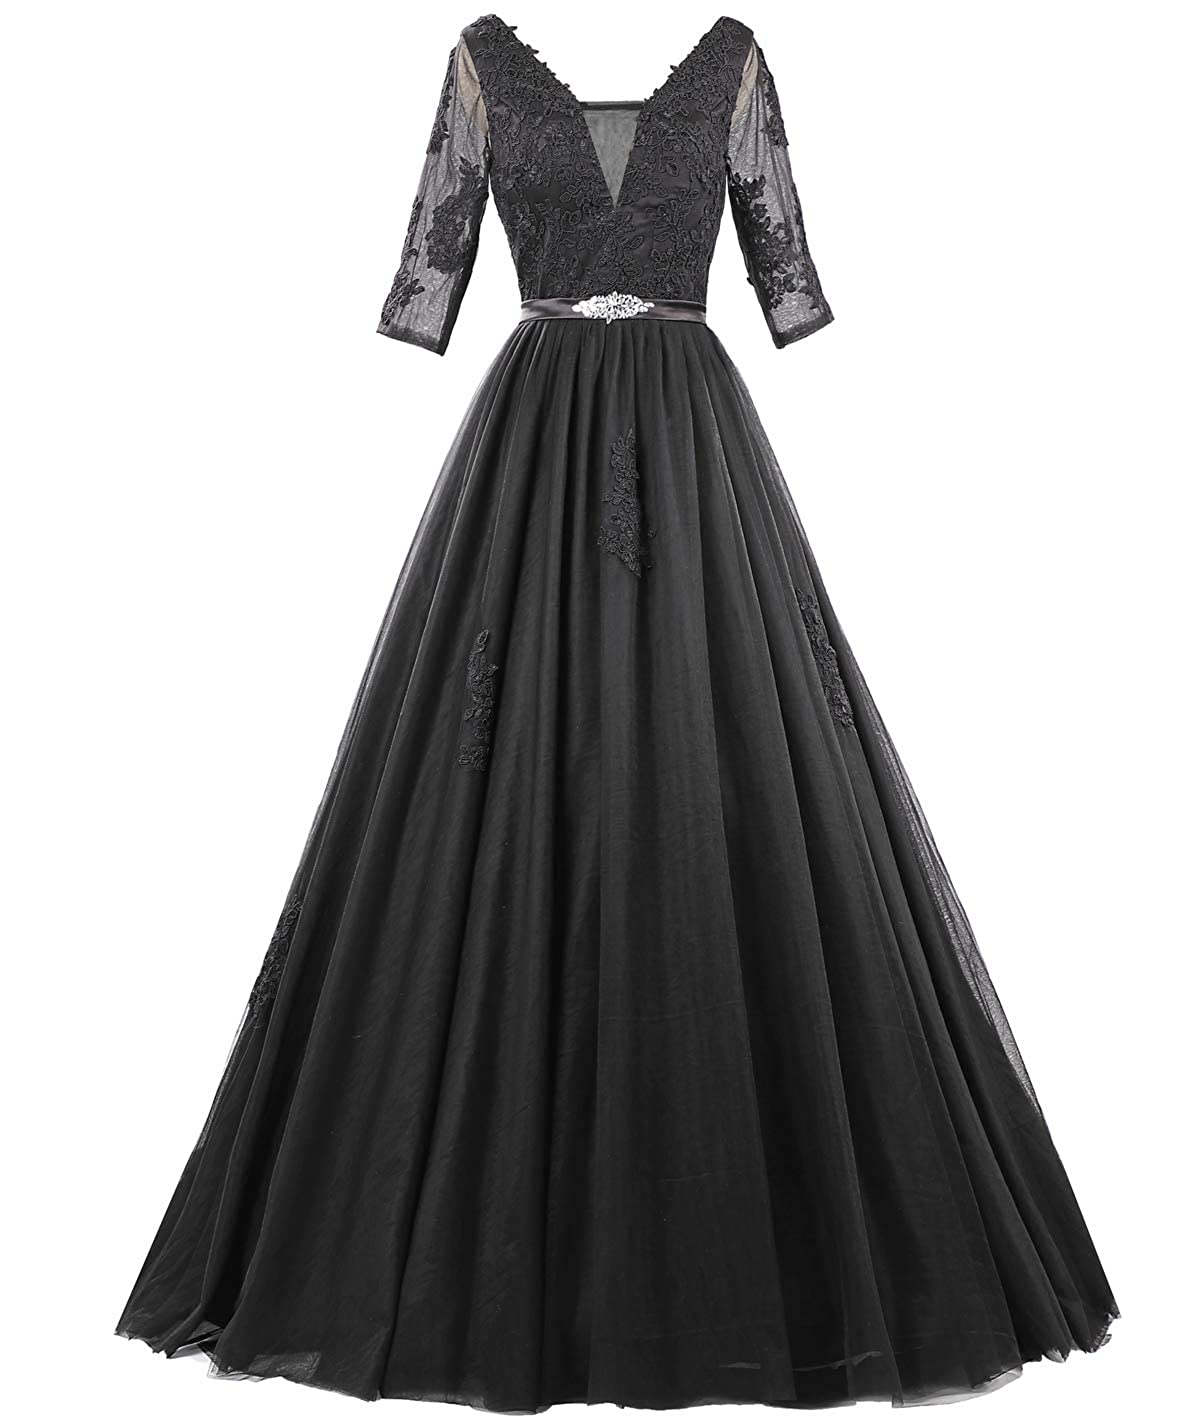 Black ZAXANTS Women's Tulle Lace Boat Neck Long Evening Dresses with Sleeves